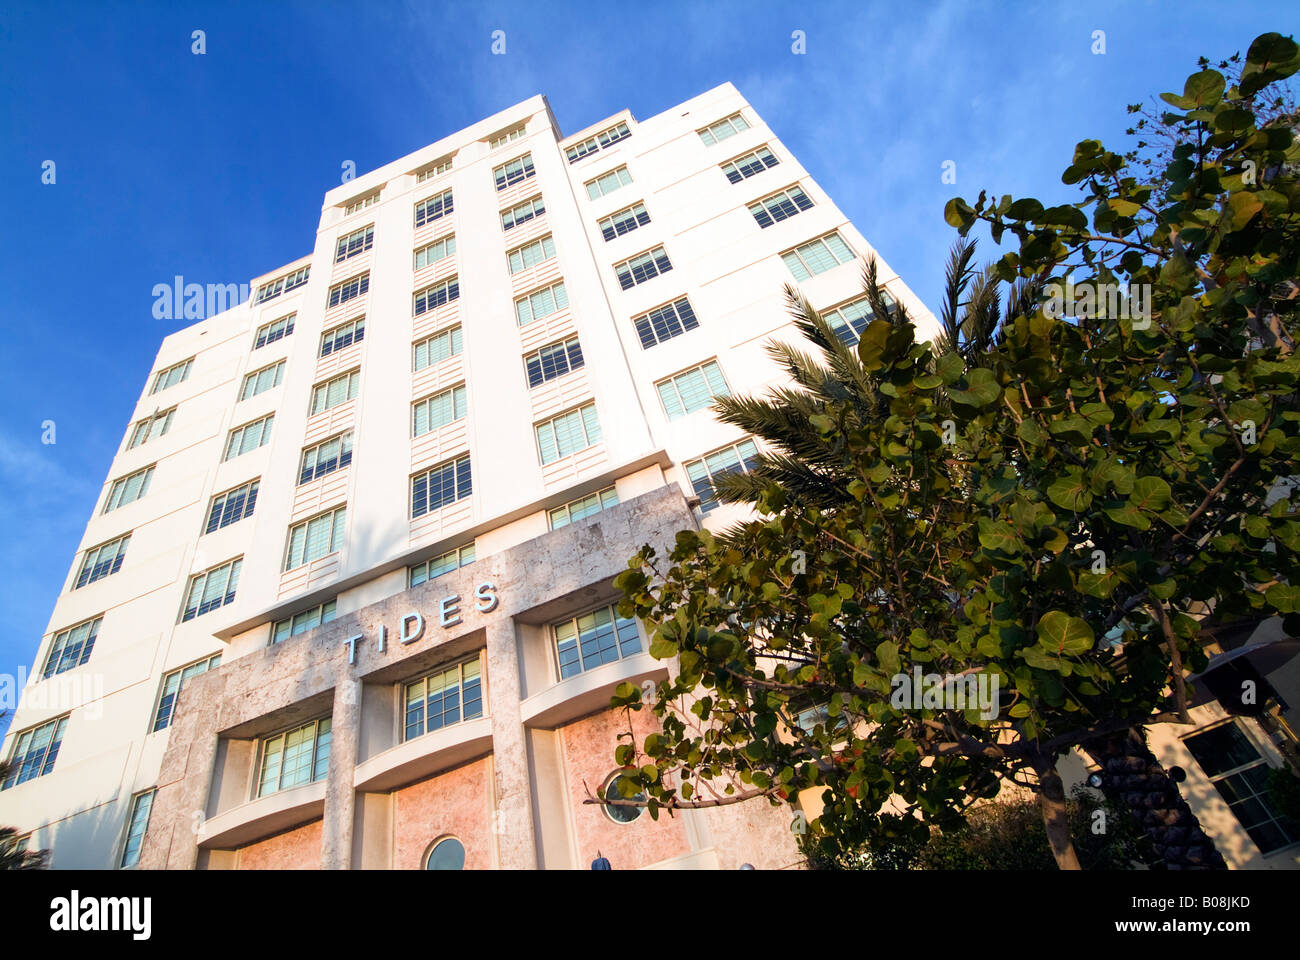 Art deco style architecture - Art Deco Style Architecture Miami Florida Usa